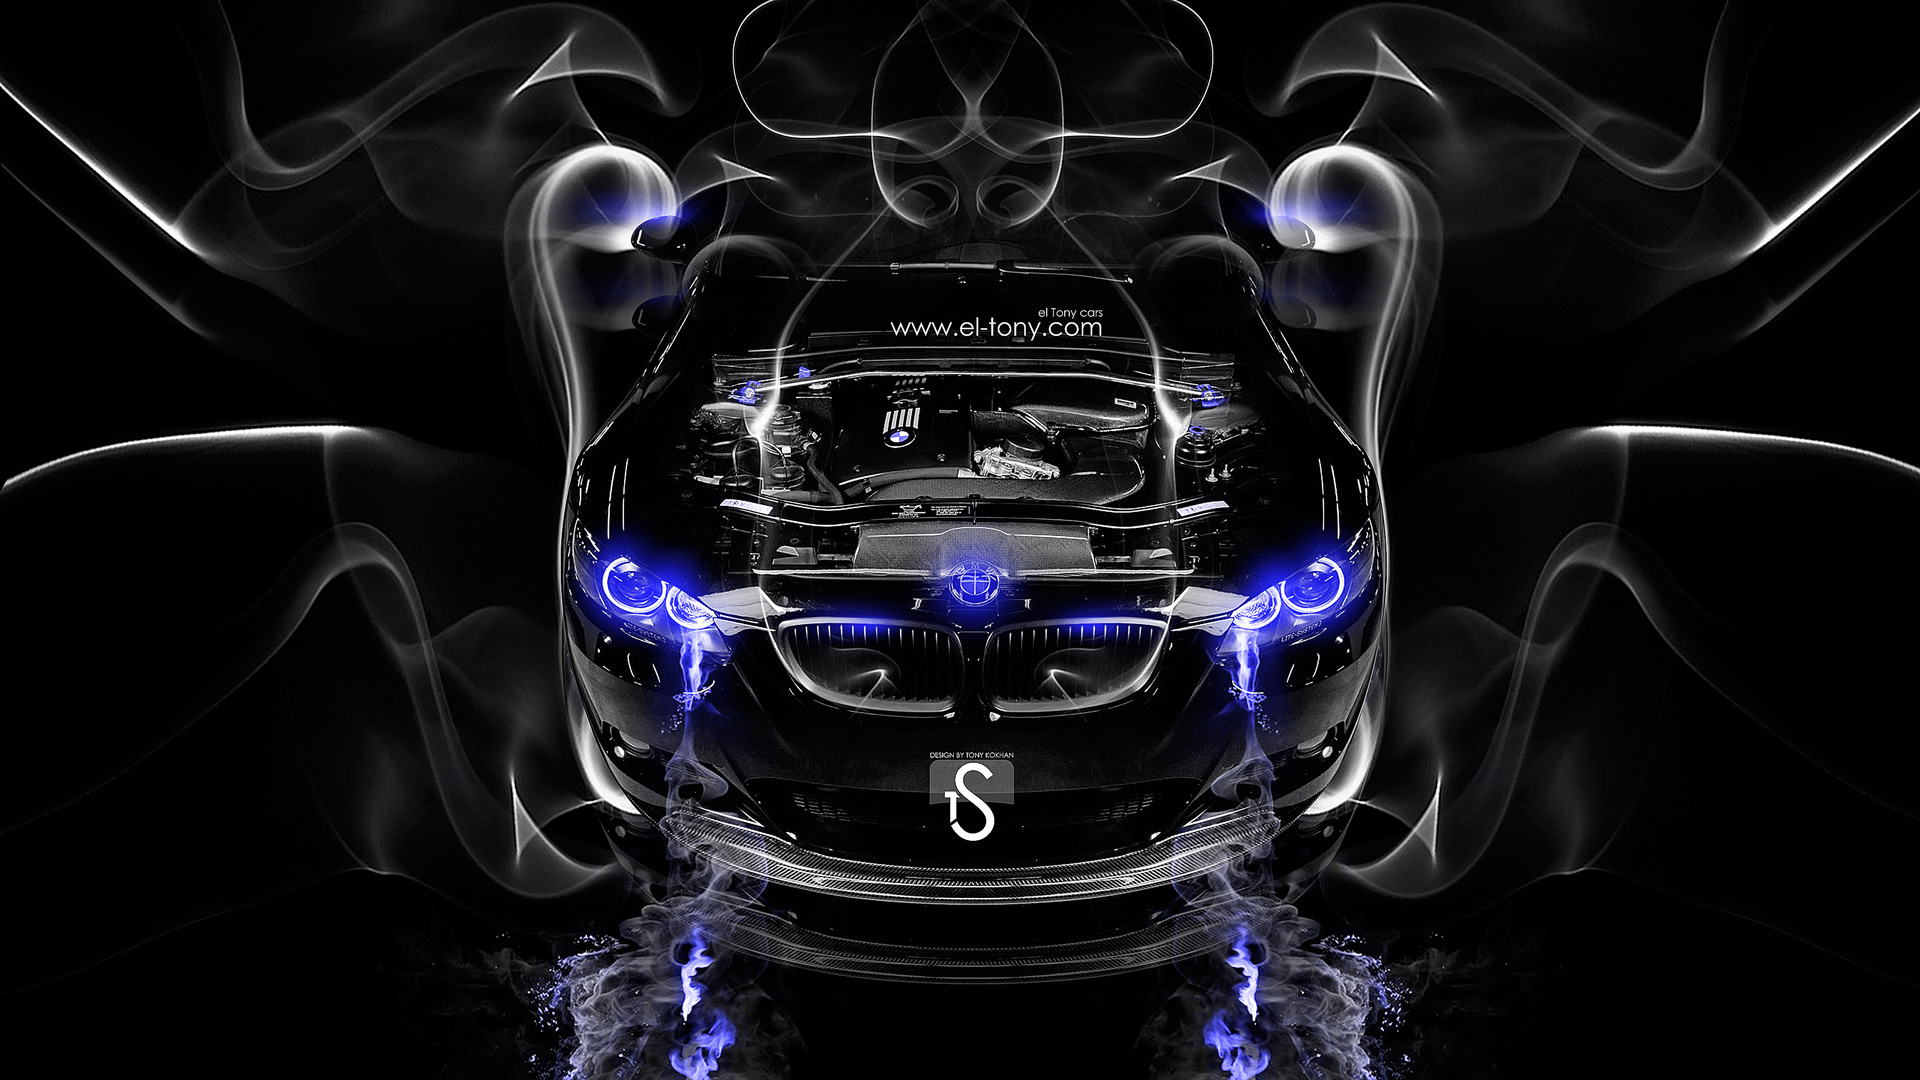 Muscle Car 3d Live Wallpaper Bmw M3 Engine Smoke Car 2014 El Tony